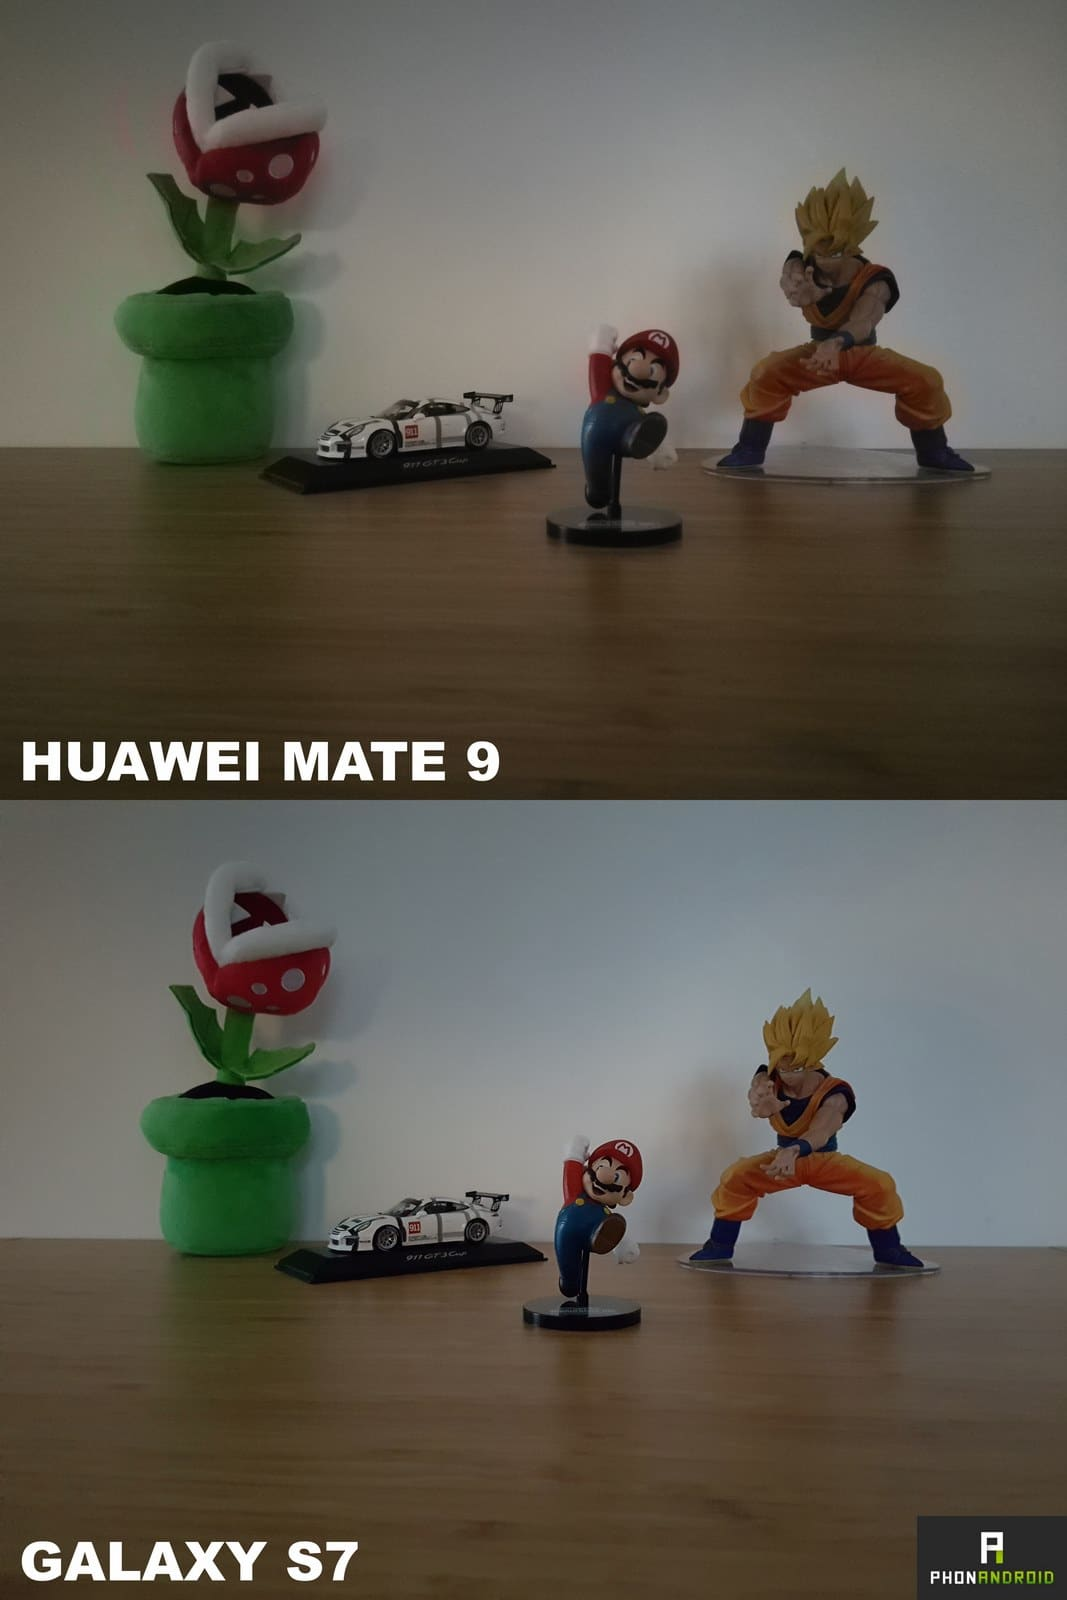 huawei mate 9 galaxy s7 photo sombre